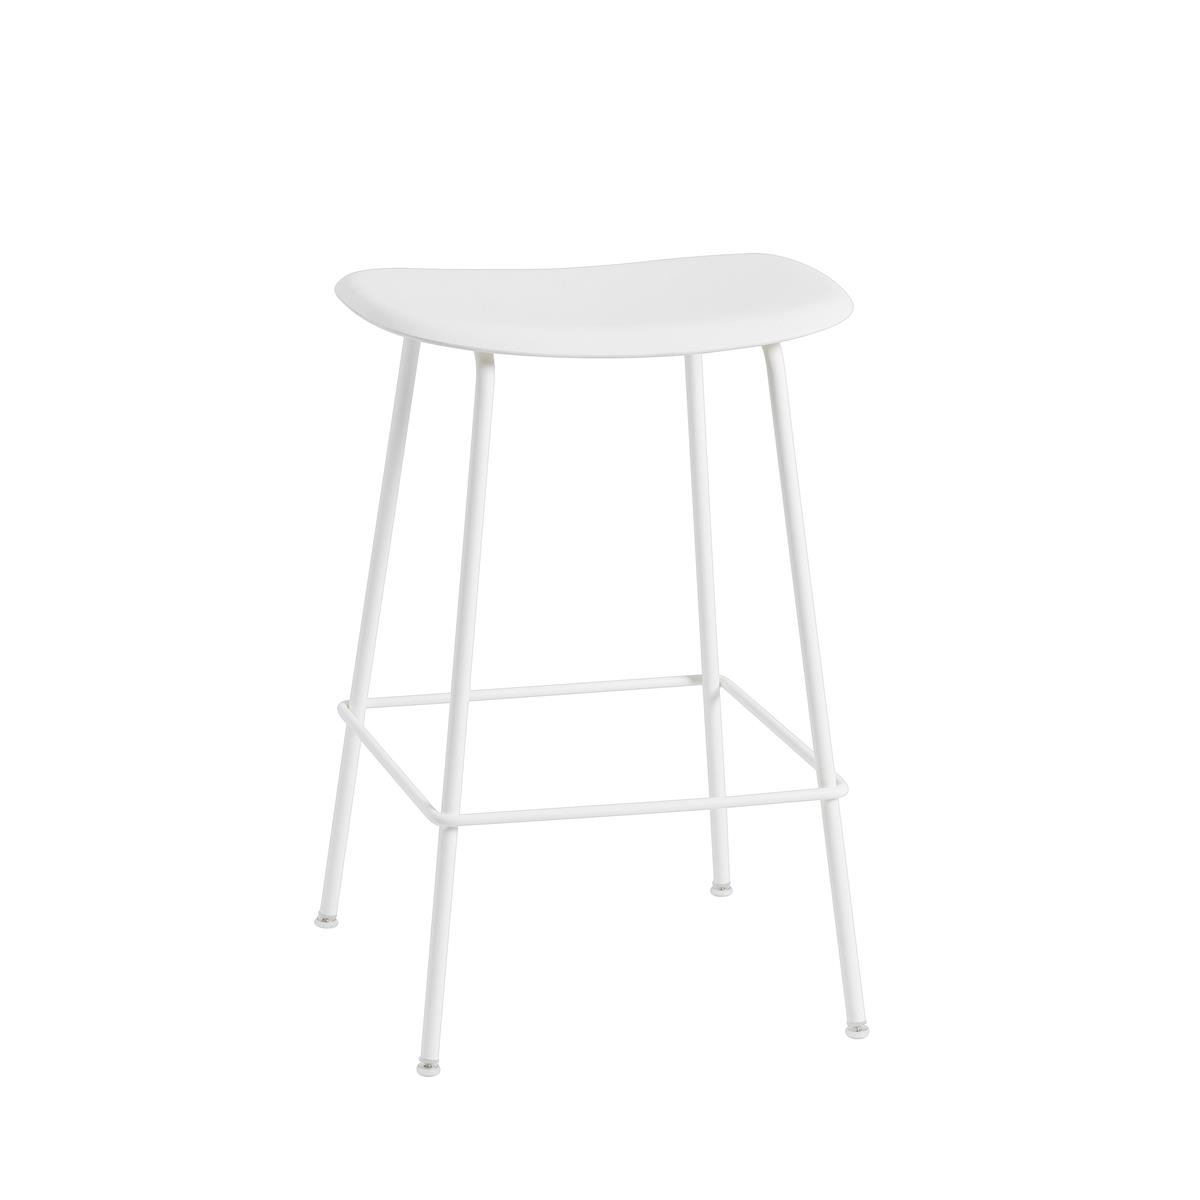 Fiber Bar Stool / Tube Base H65 - Natural White